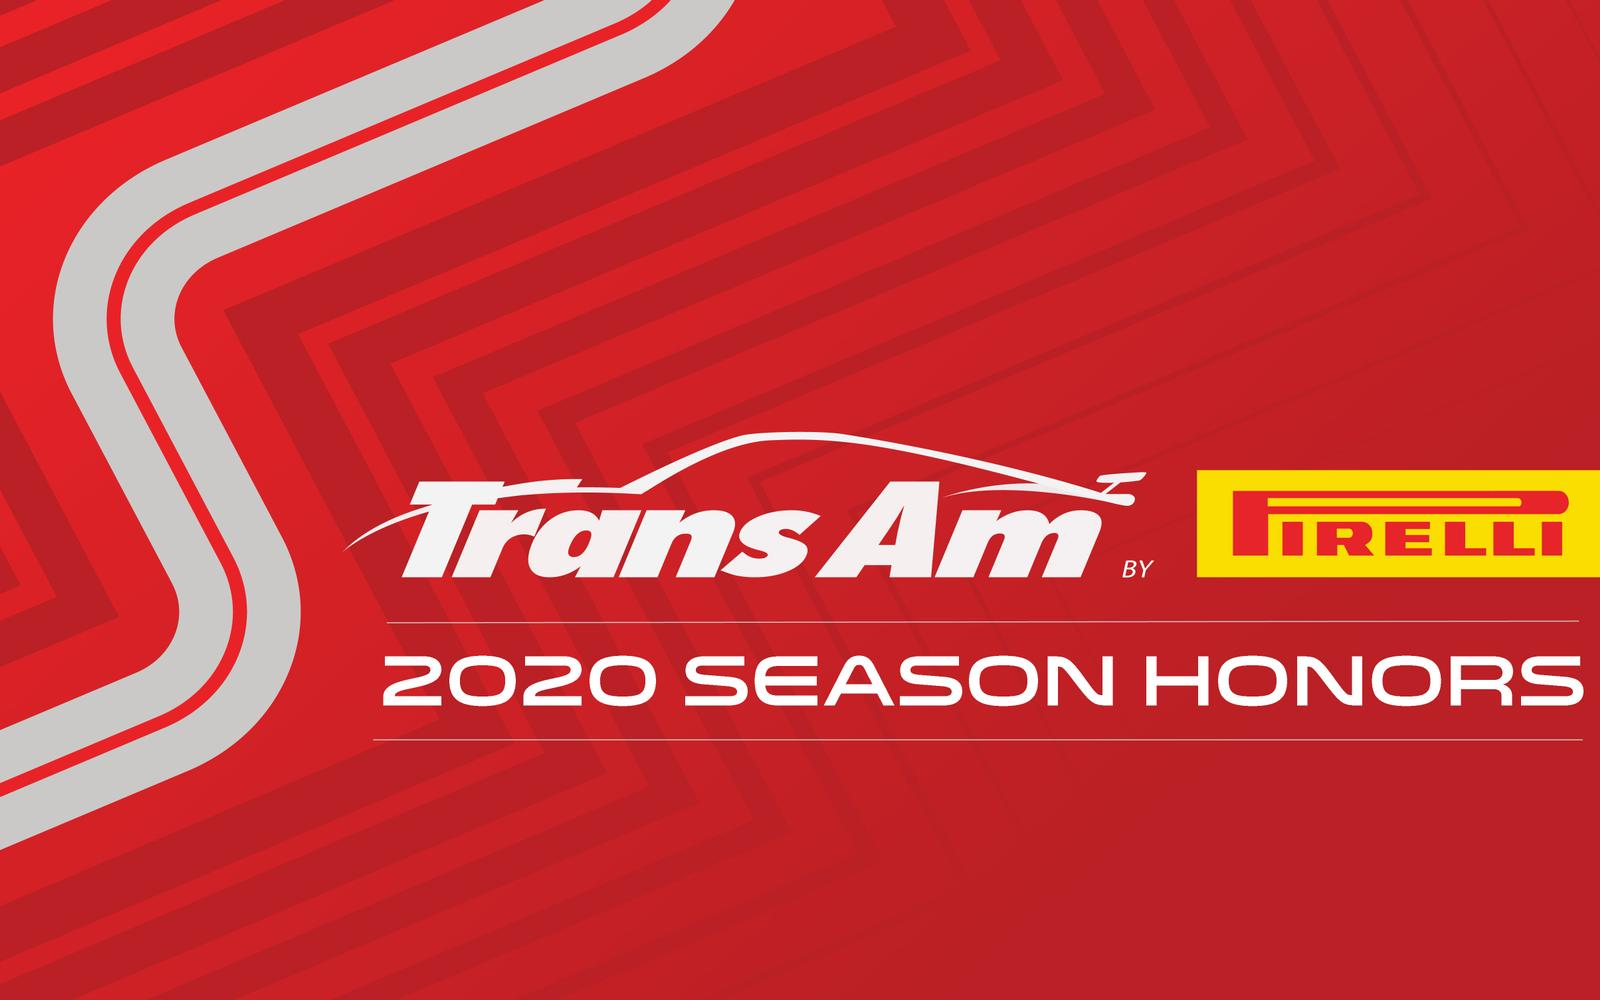 Trans Am Virtual Honors Ceremony Recognizes Top Drivers from Home